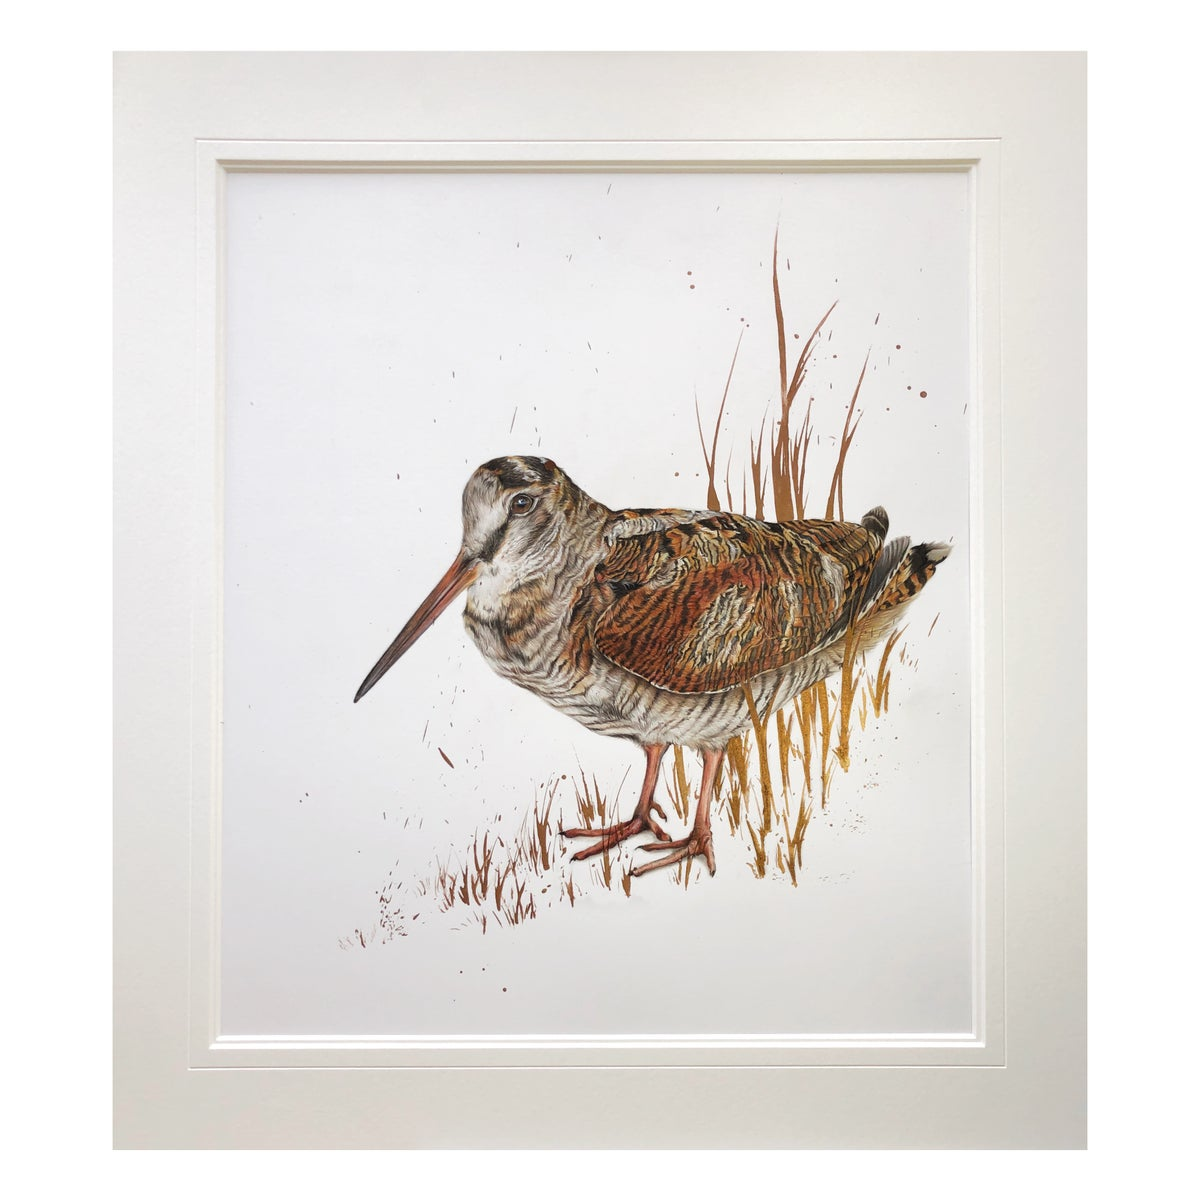 Image of 'Woodcock' Limited Edition Print- Hand Embellished